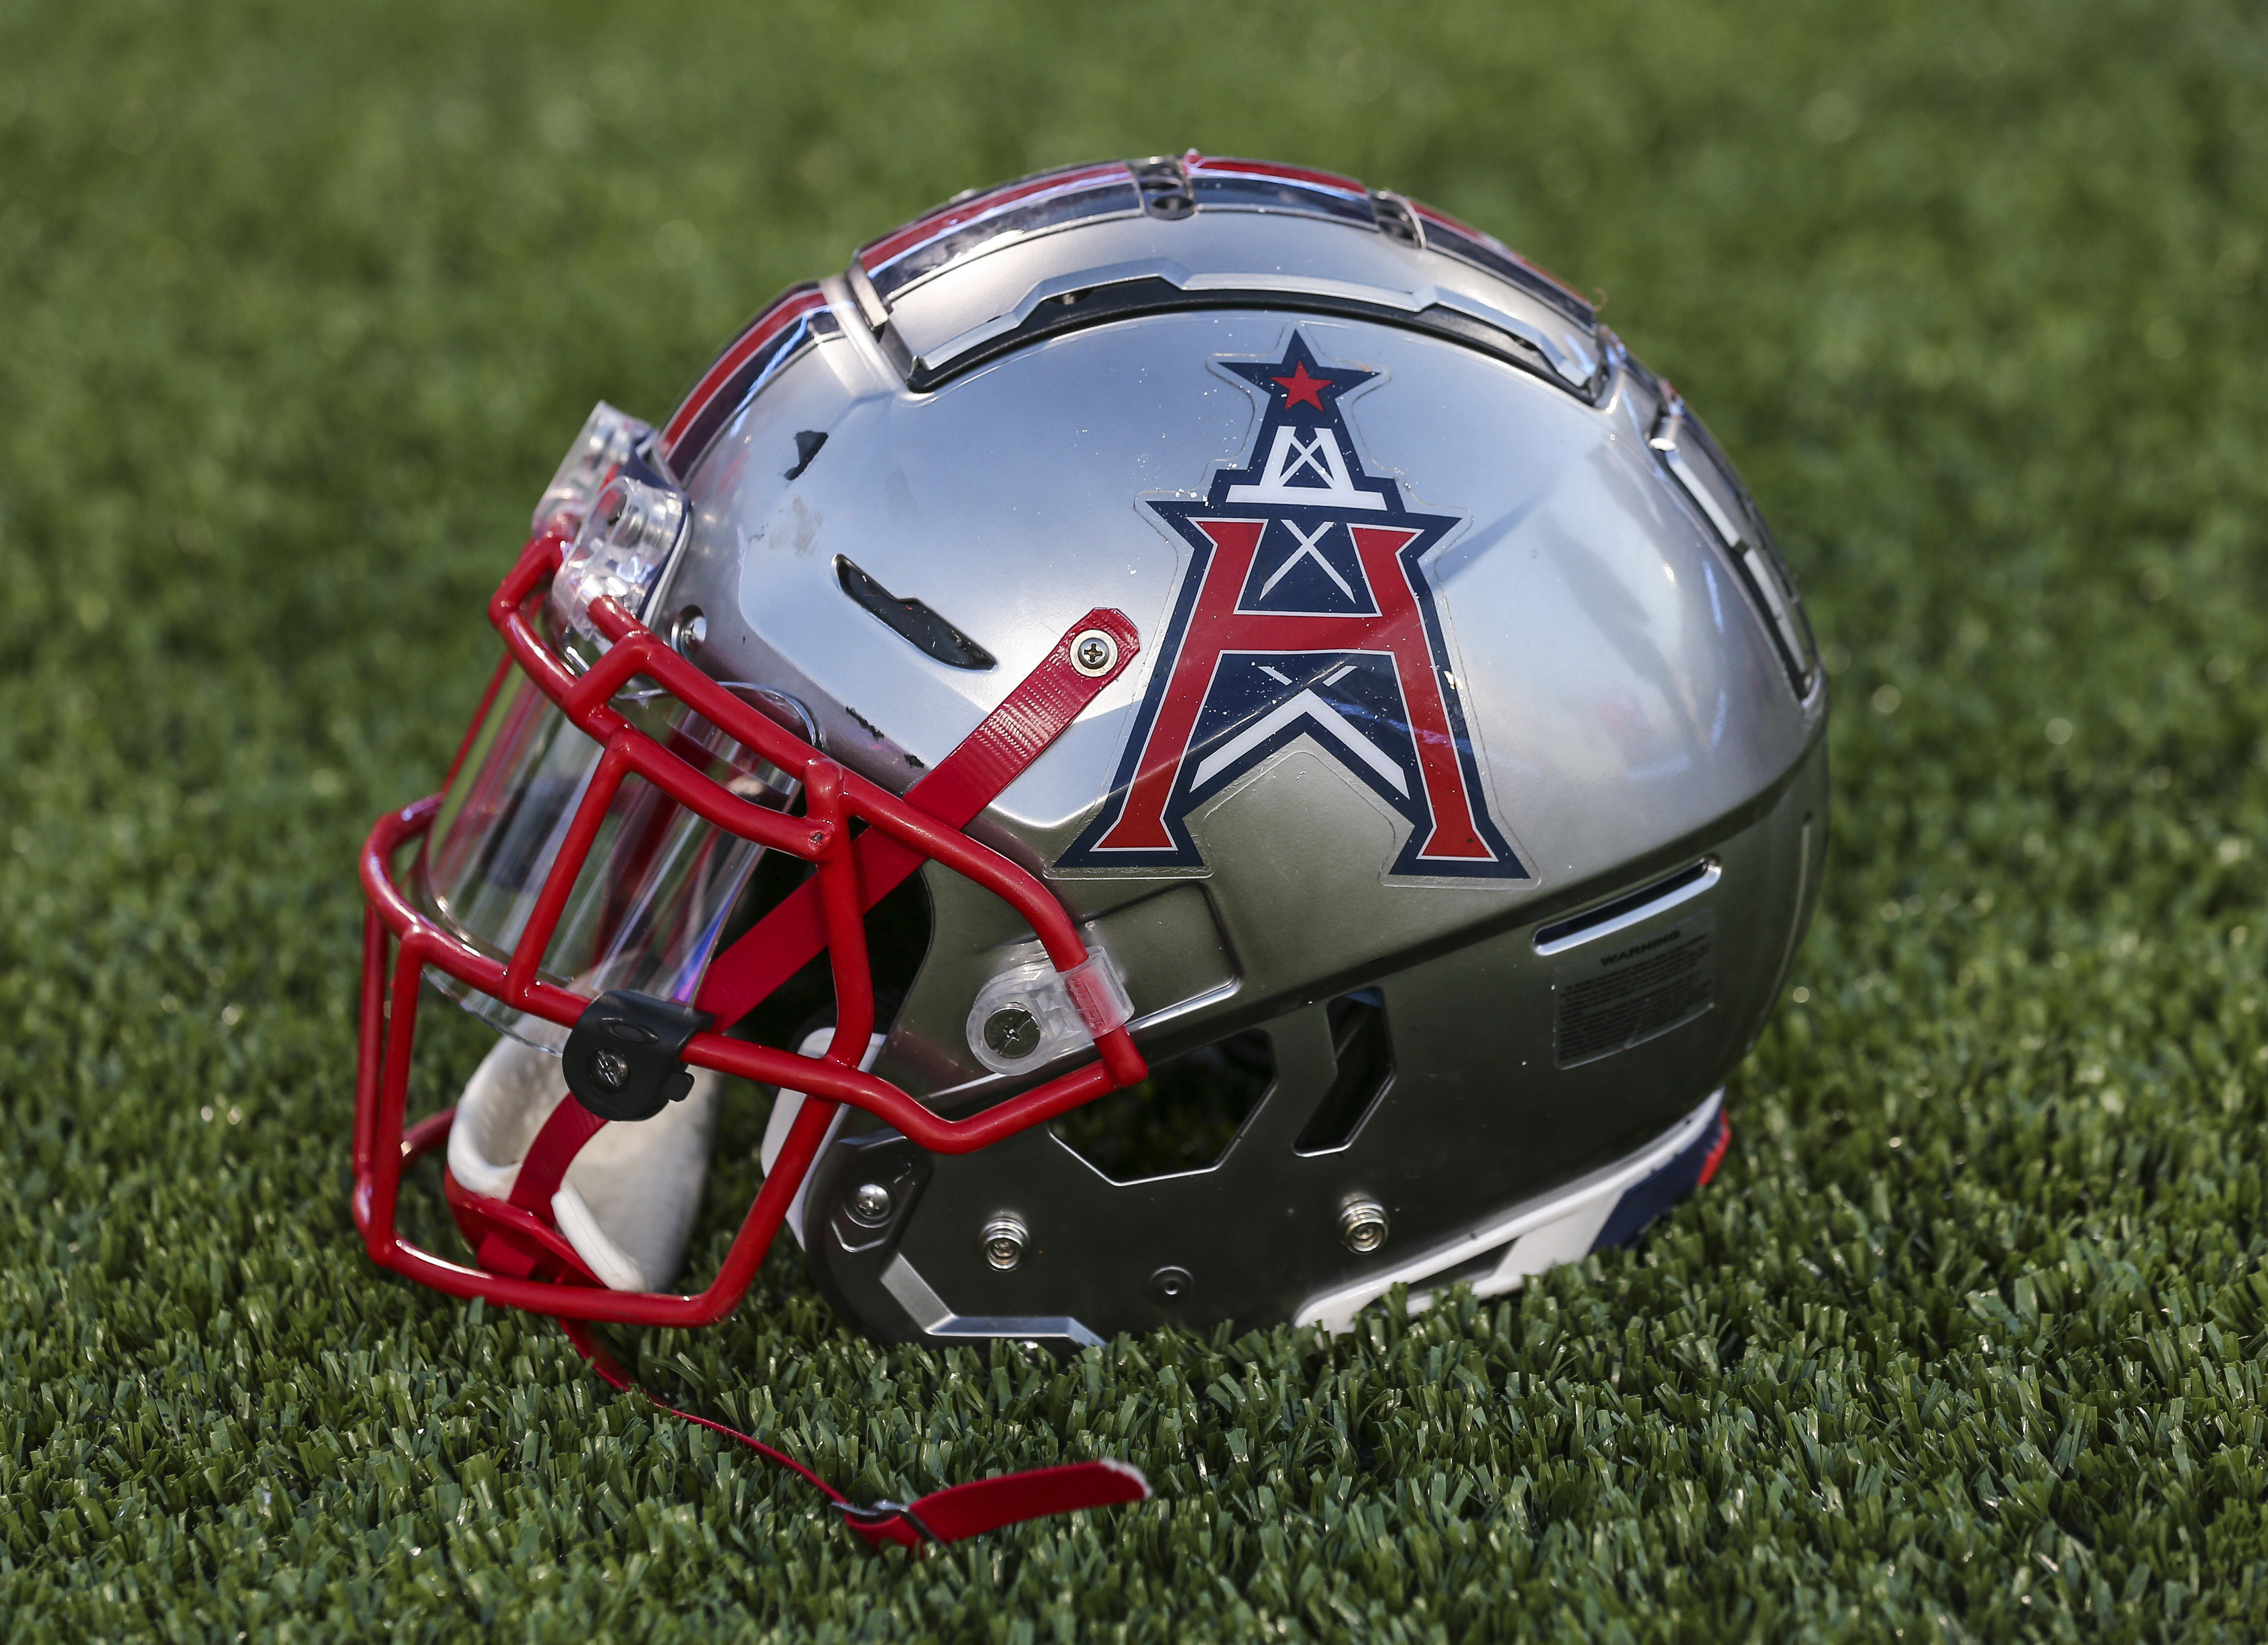 General view of a Houston Roughnecks helmet during a XFL football game against the Los Angeles Wildcats at TDECU Stadium.